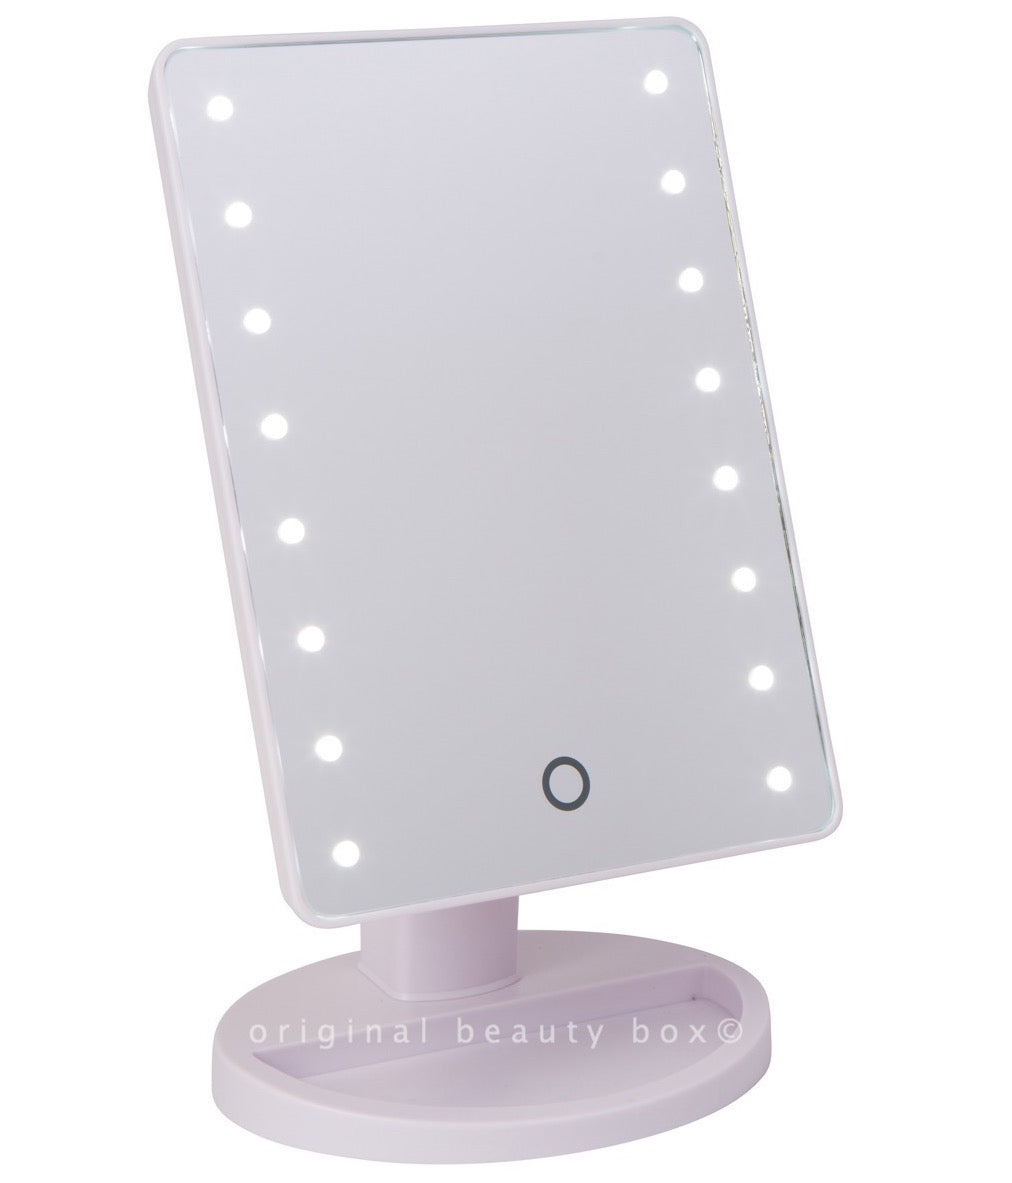 stand up vanity mirror with lights. Original Beauty Box WHITE MINI LIGHT UP VANITY MIRROR